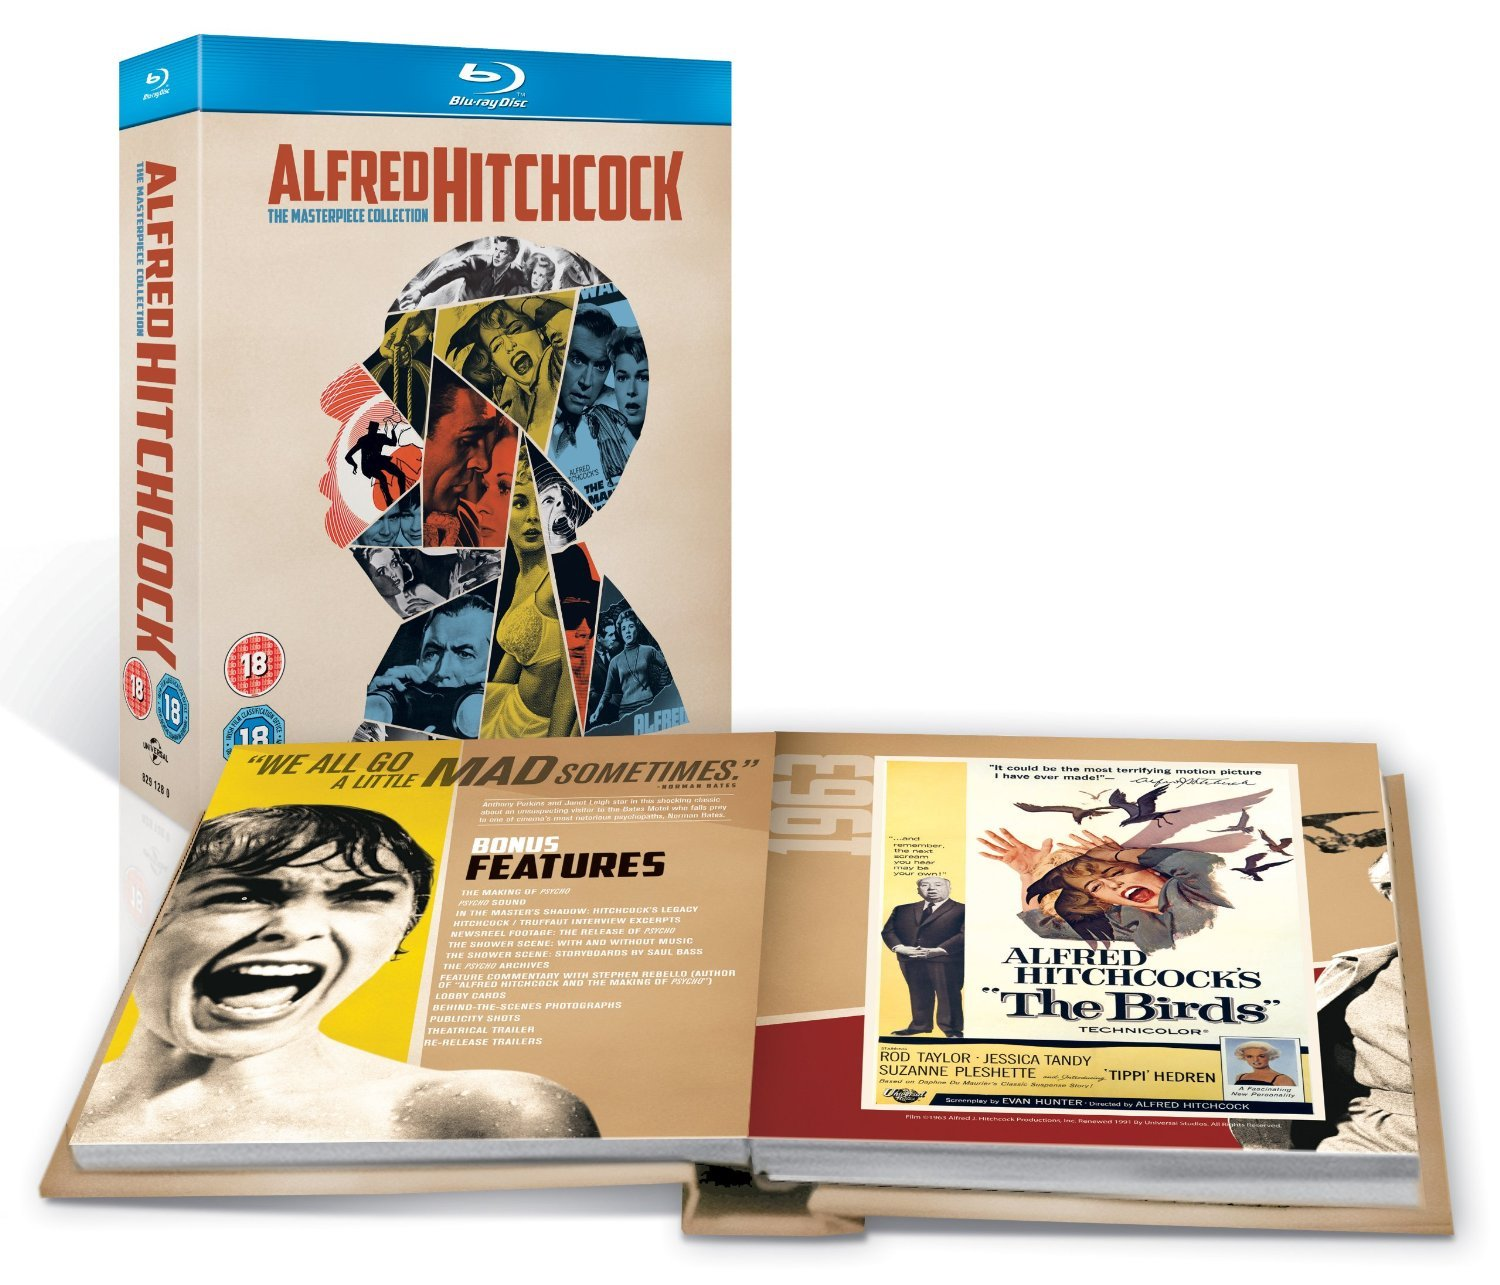 alfred hitchcock the masterpiece collection blu ray 1942 region free